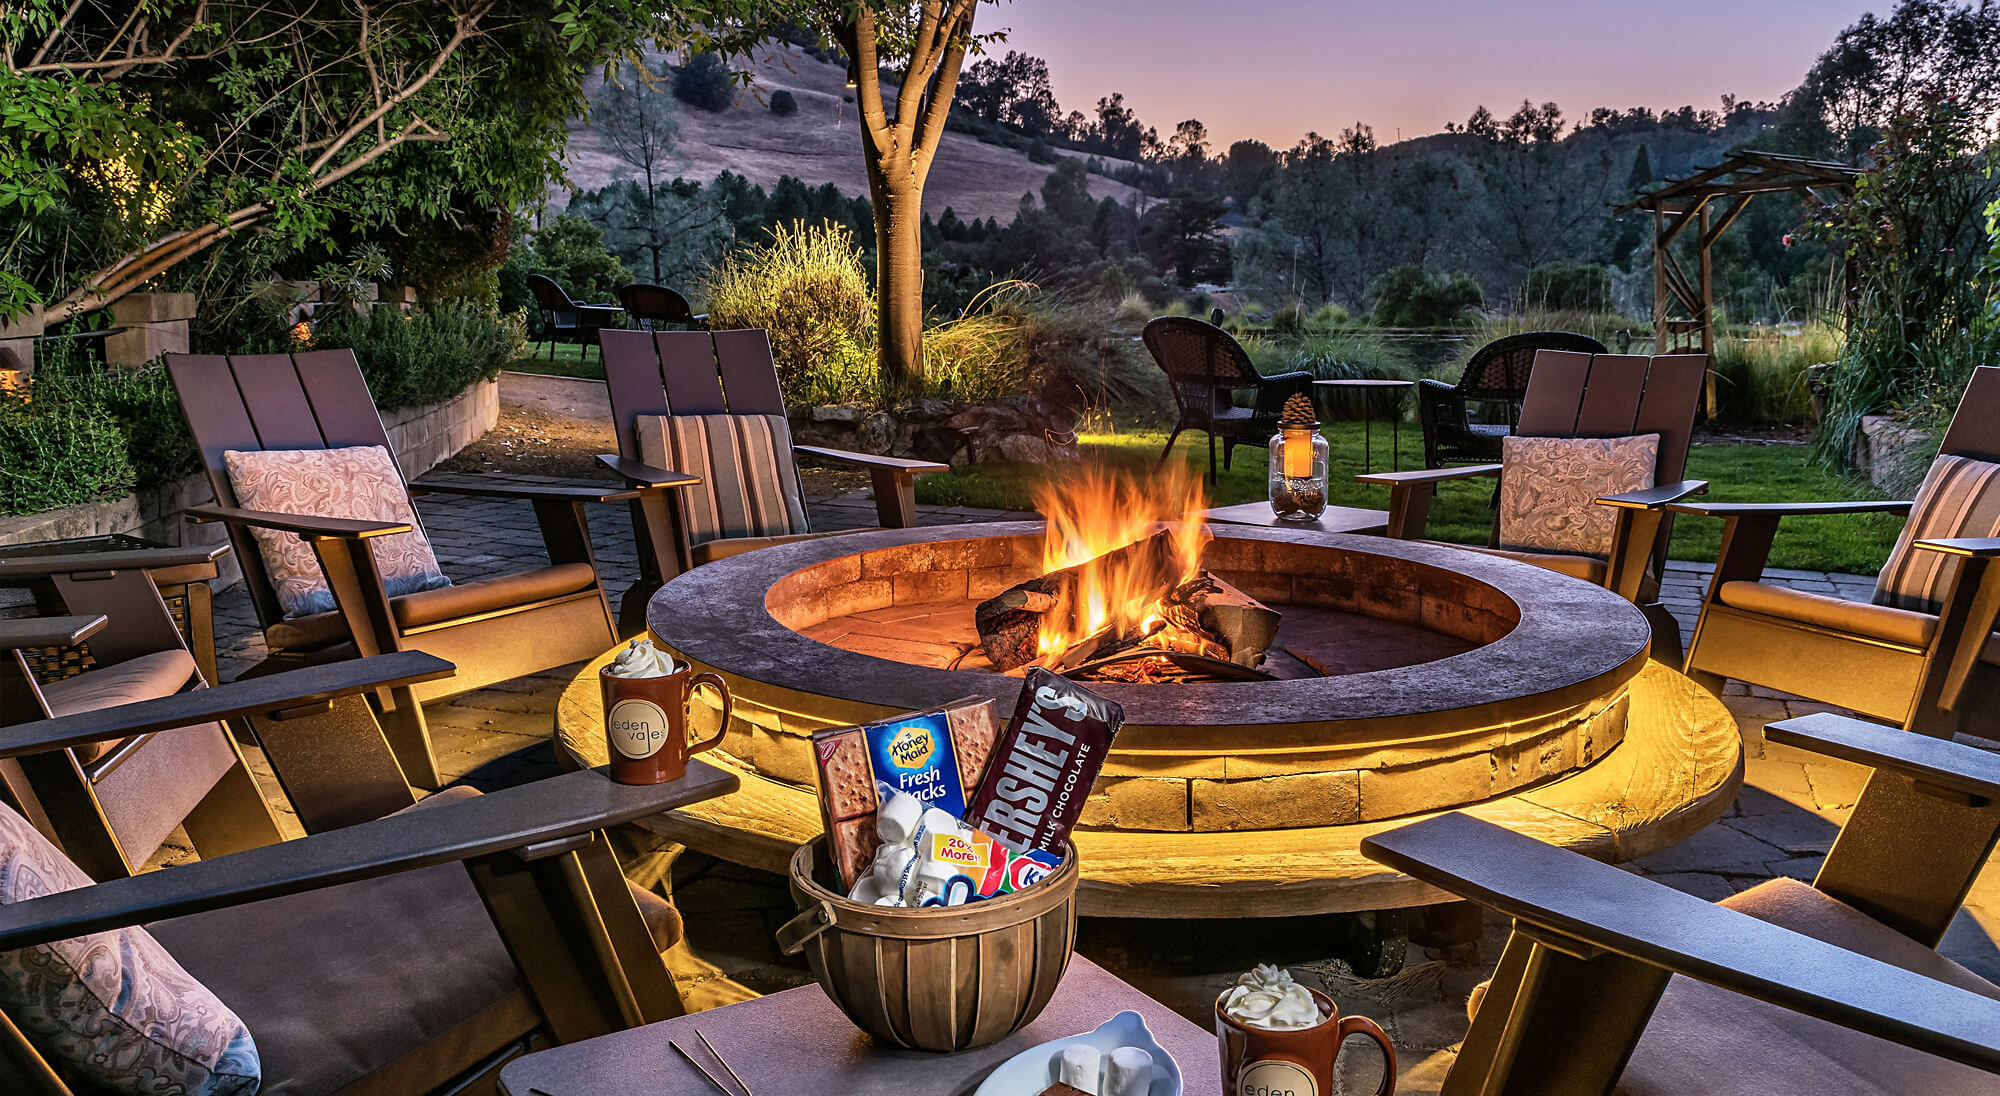 Cozy fire pit surrounded by chairs with ingredients to make s'mores